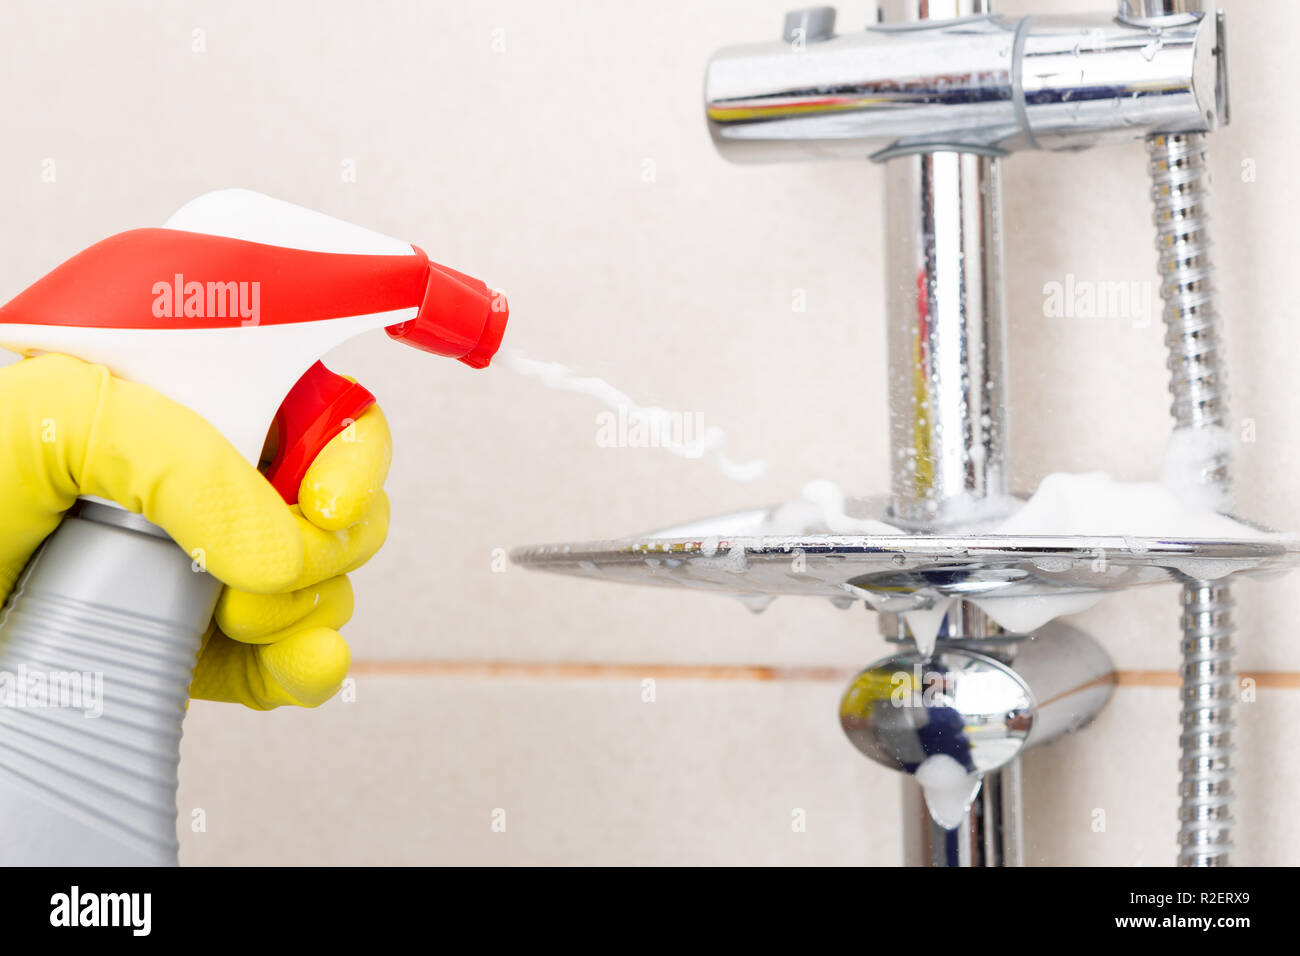 Person wearing rubber hygienic gloves spraying soap holder in shower as chores concept - Stock Image